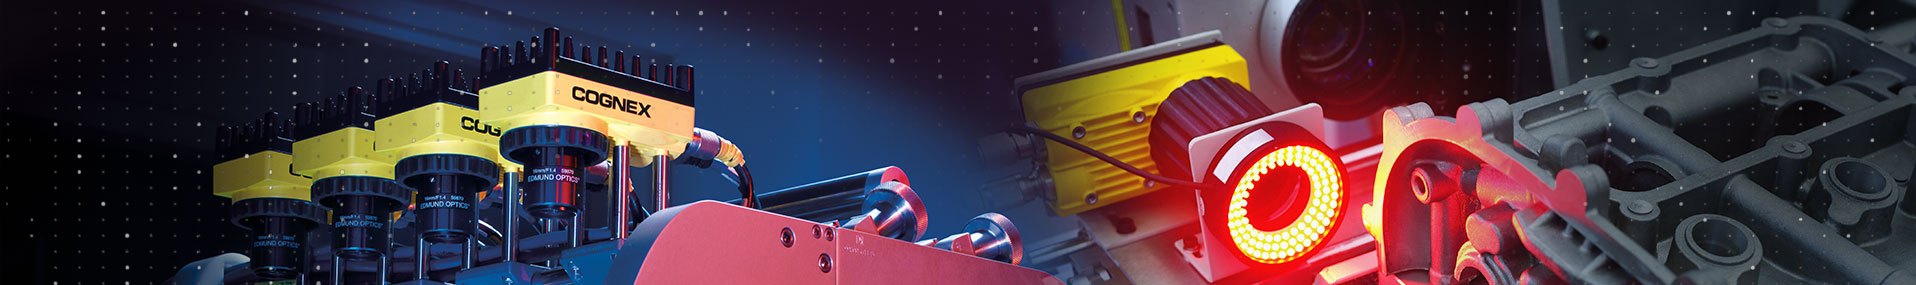 Cognex Product Applications banner